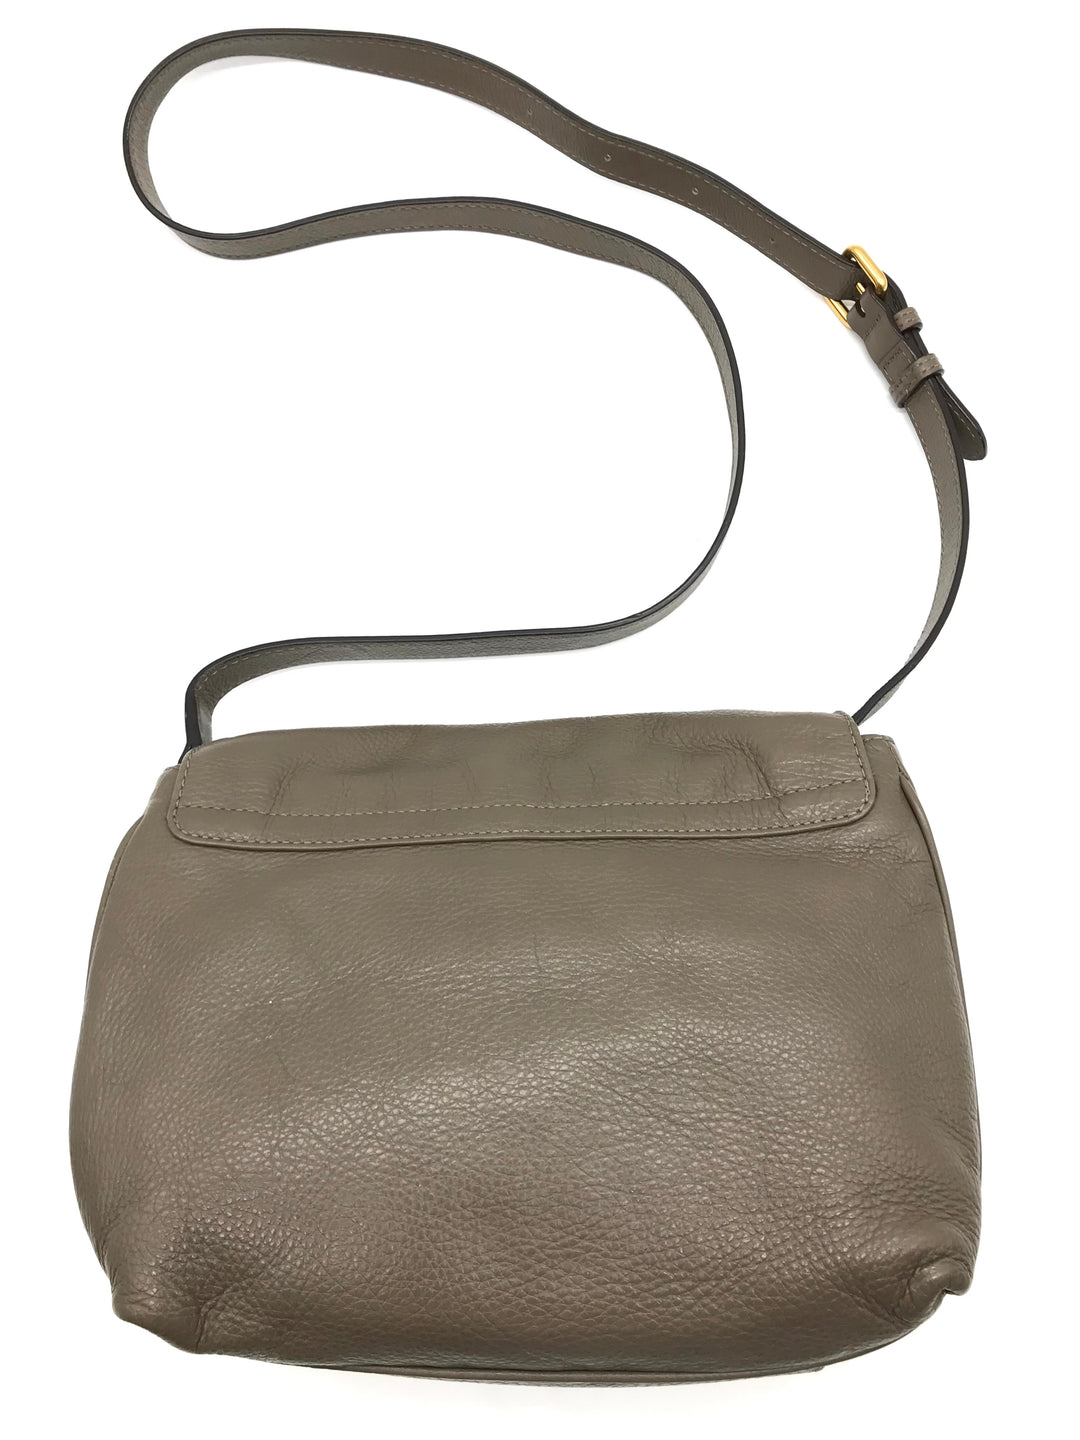 "Photo #3 - BRAND: MARC BY MARC JACOBS <BR>STYLE: HANDBAG DESIGNER <BR>COLOR: TAUPE <BR>SIZE: SMALL 8.5""H X 10""L X 2.2""W<BR>STRAP DROP: 22.5""<BR>SKU: 262-26241-43499<BR>IN GOOD SHAPE AND CONDITION"